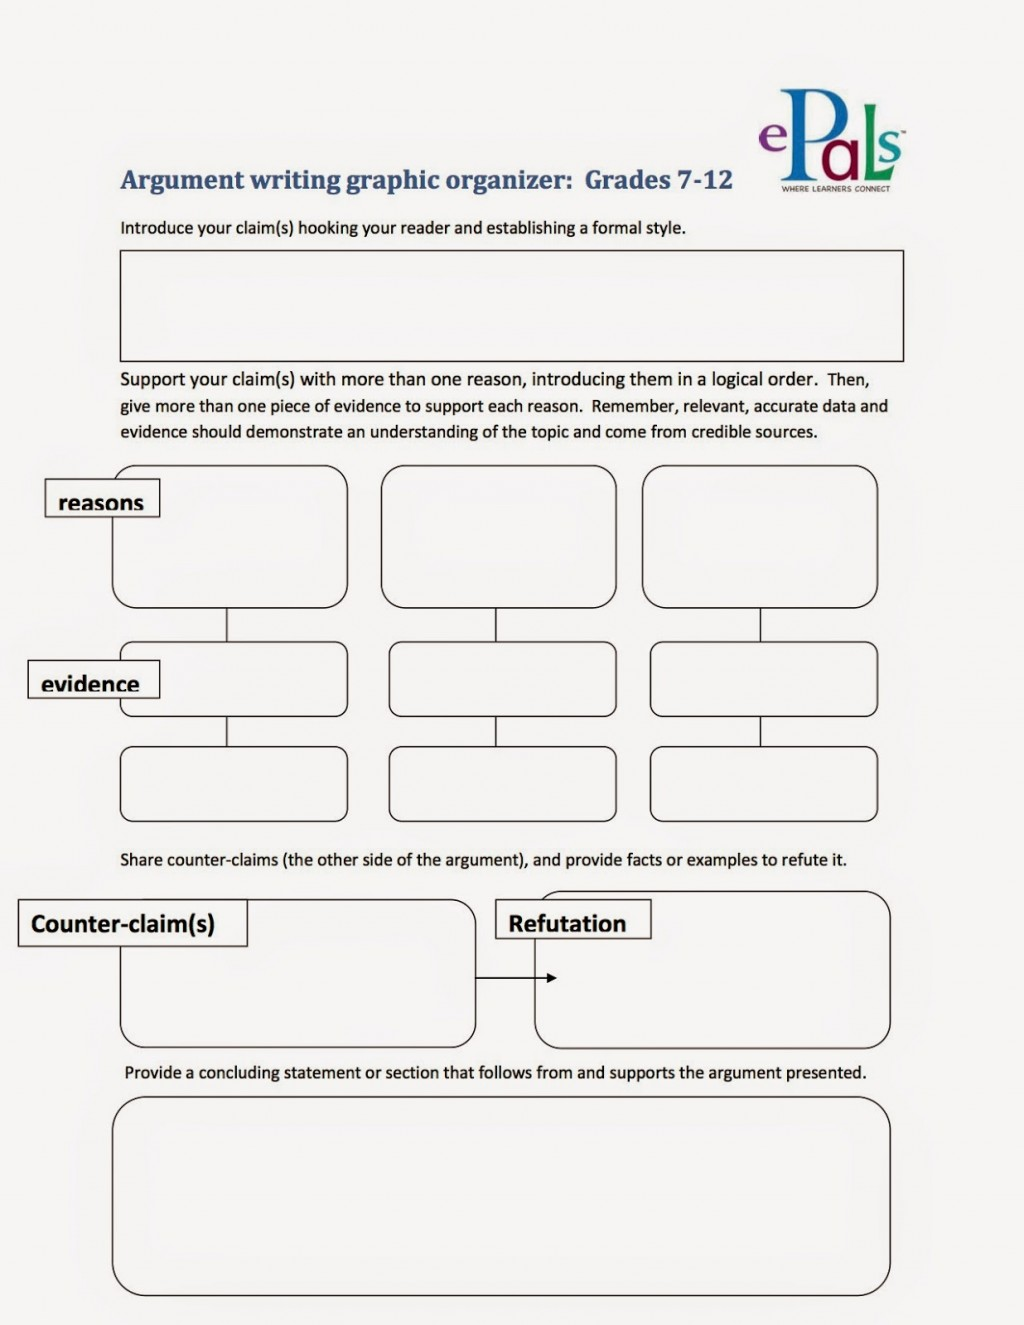 003 Argumentgraphicorganizer2bcopy Essay Example Argumentative Graphic Incredible Organizer Persuasive High School Pdf Common Core Large